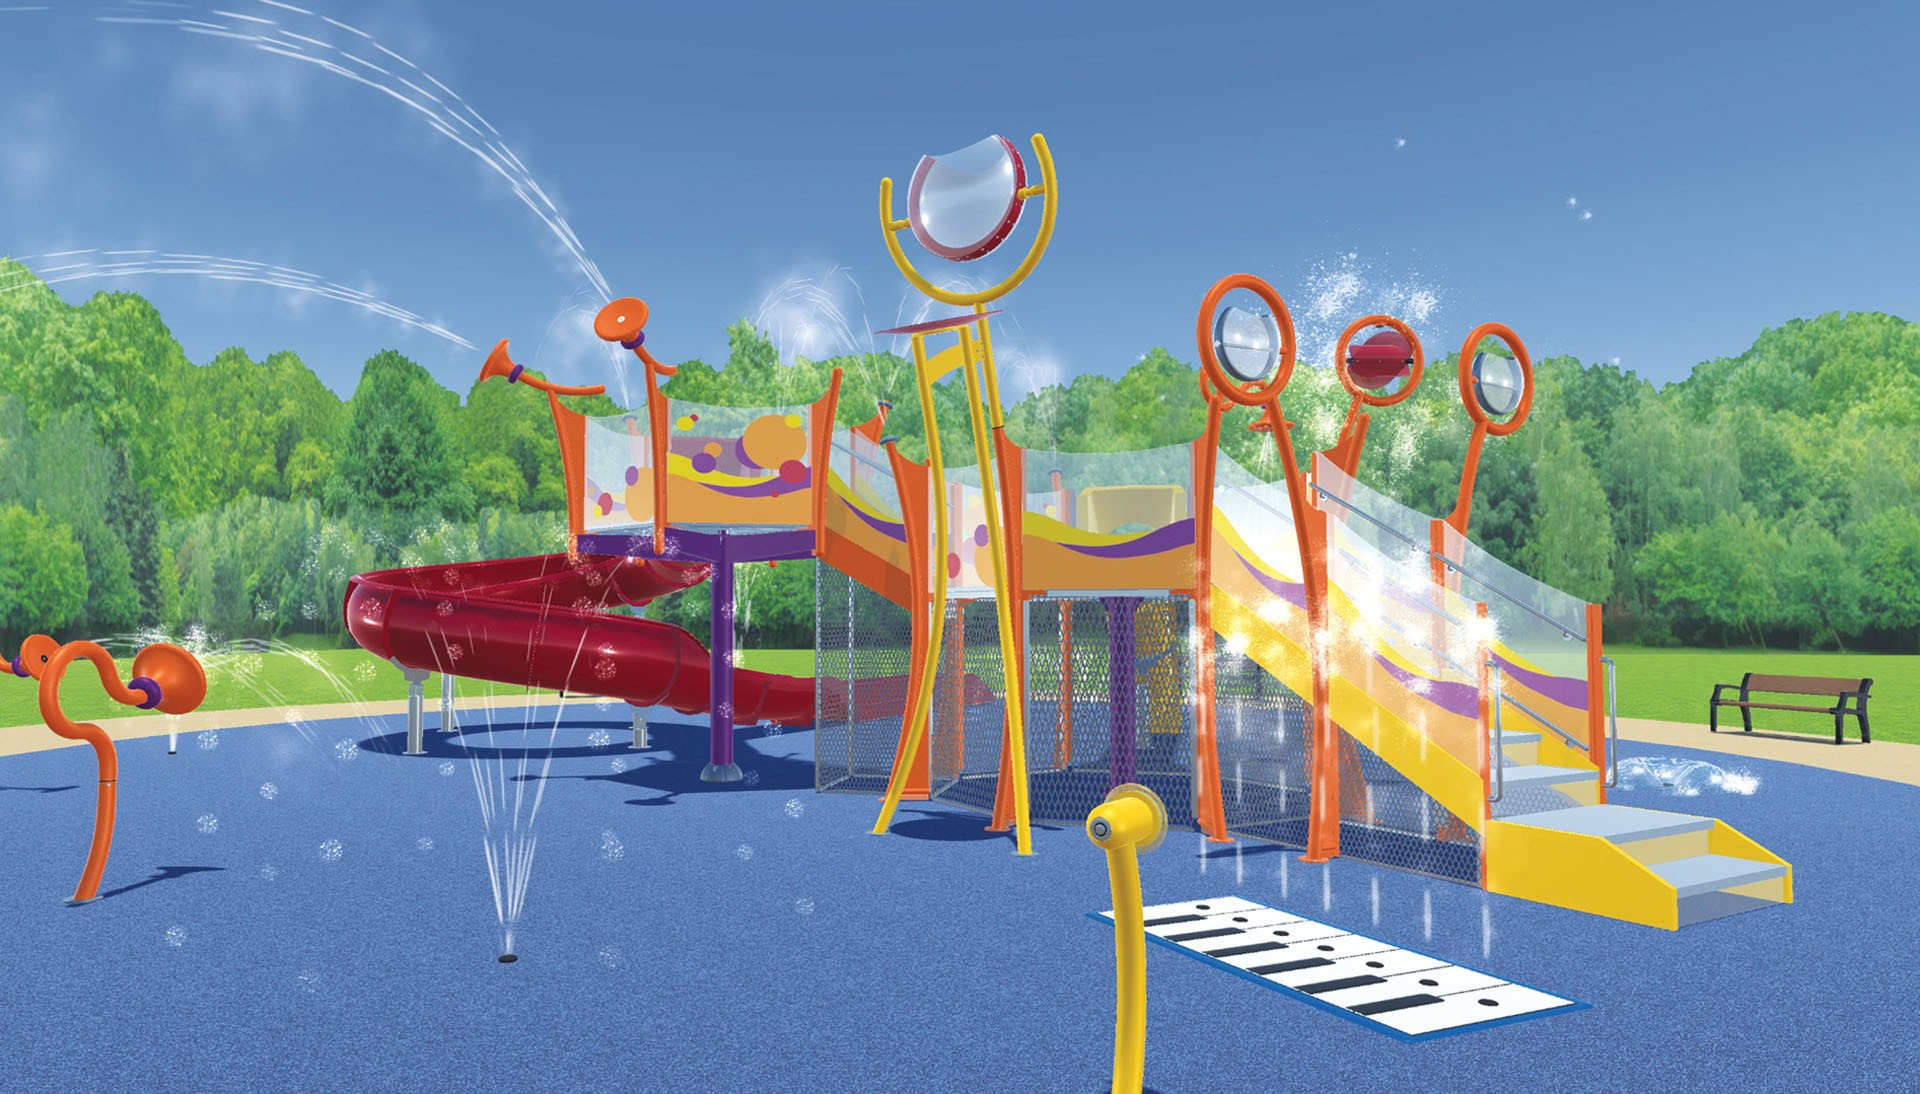 The splash pad is planned to take up 8,450 square feet in Wibaux Park, which would be larger than the neighboring frog pond. The pad will have ten different features, including a giant set of piano keys, numerous water jets, and slides for kids of all sizes. The group hopes to fund the $750,000 project within the next three years.SUBMITTED PHOTO